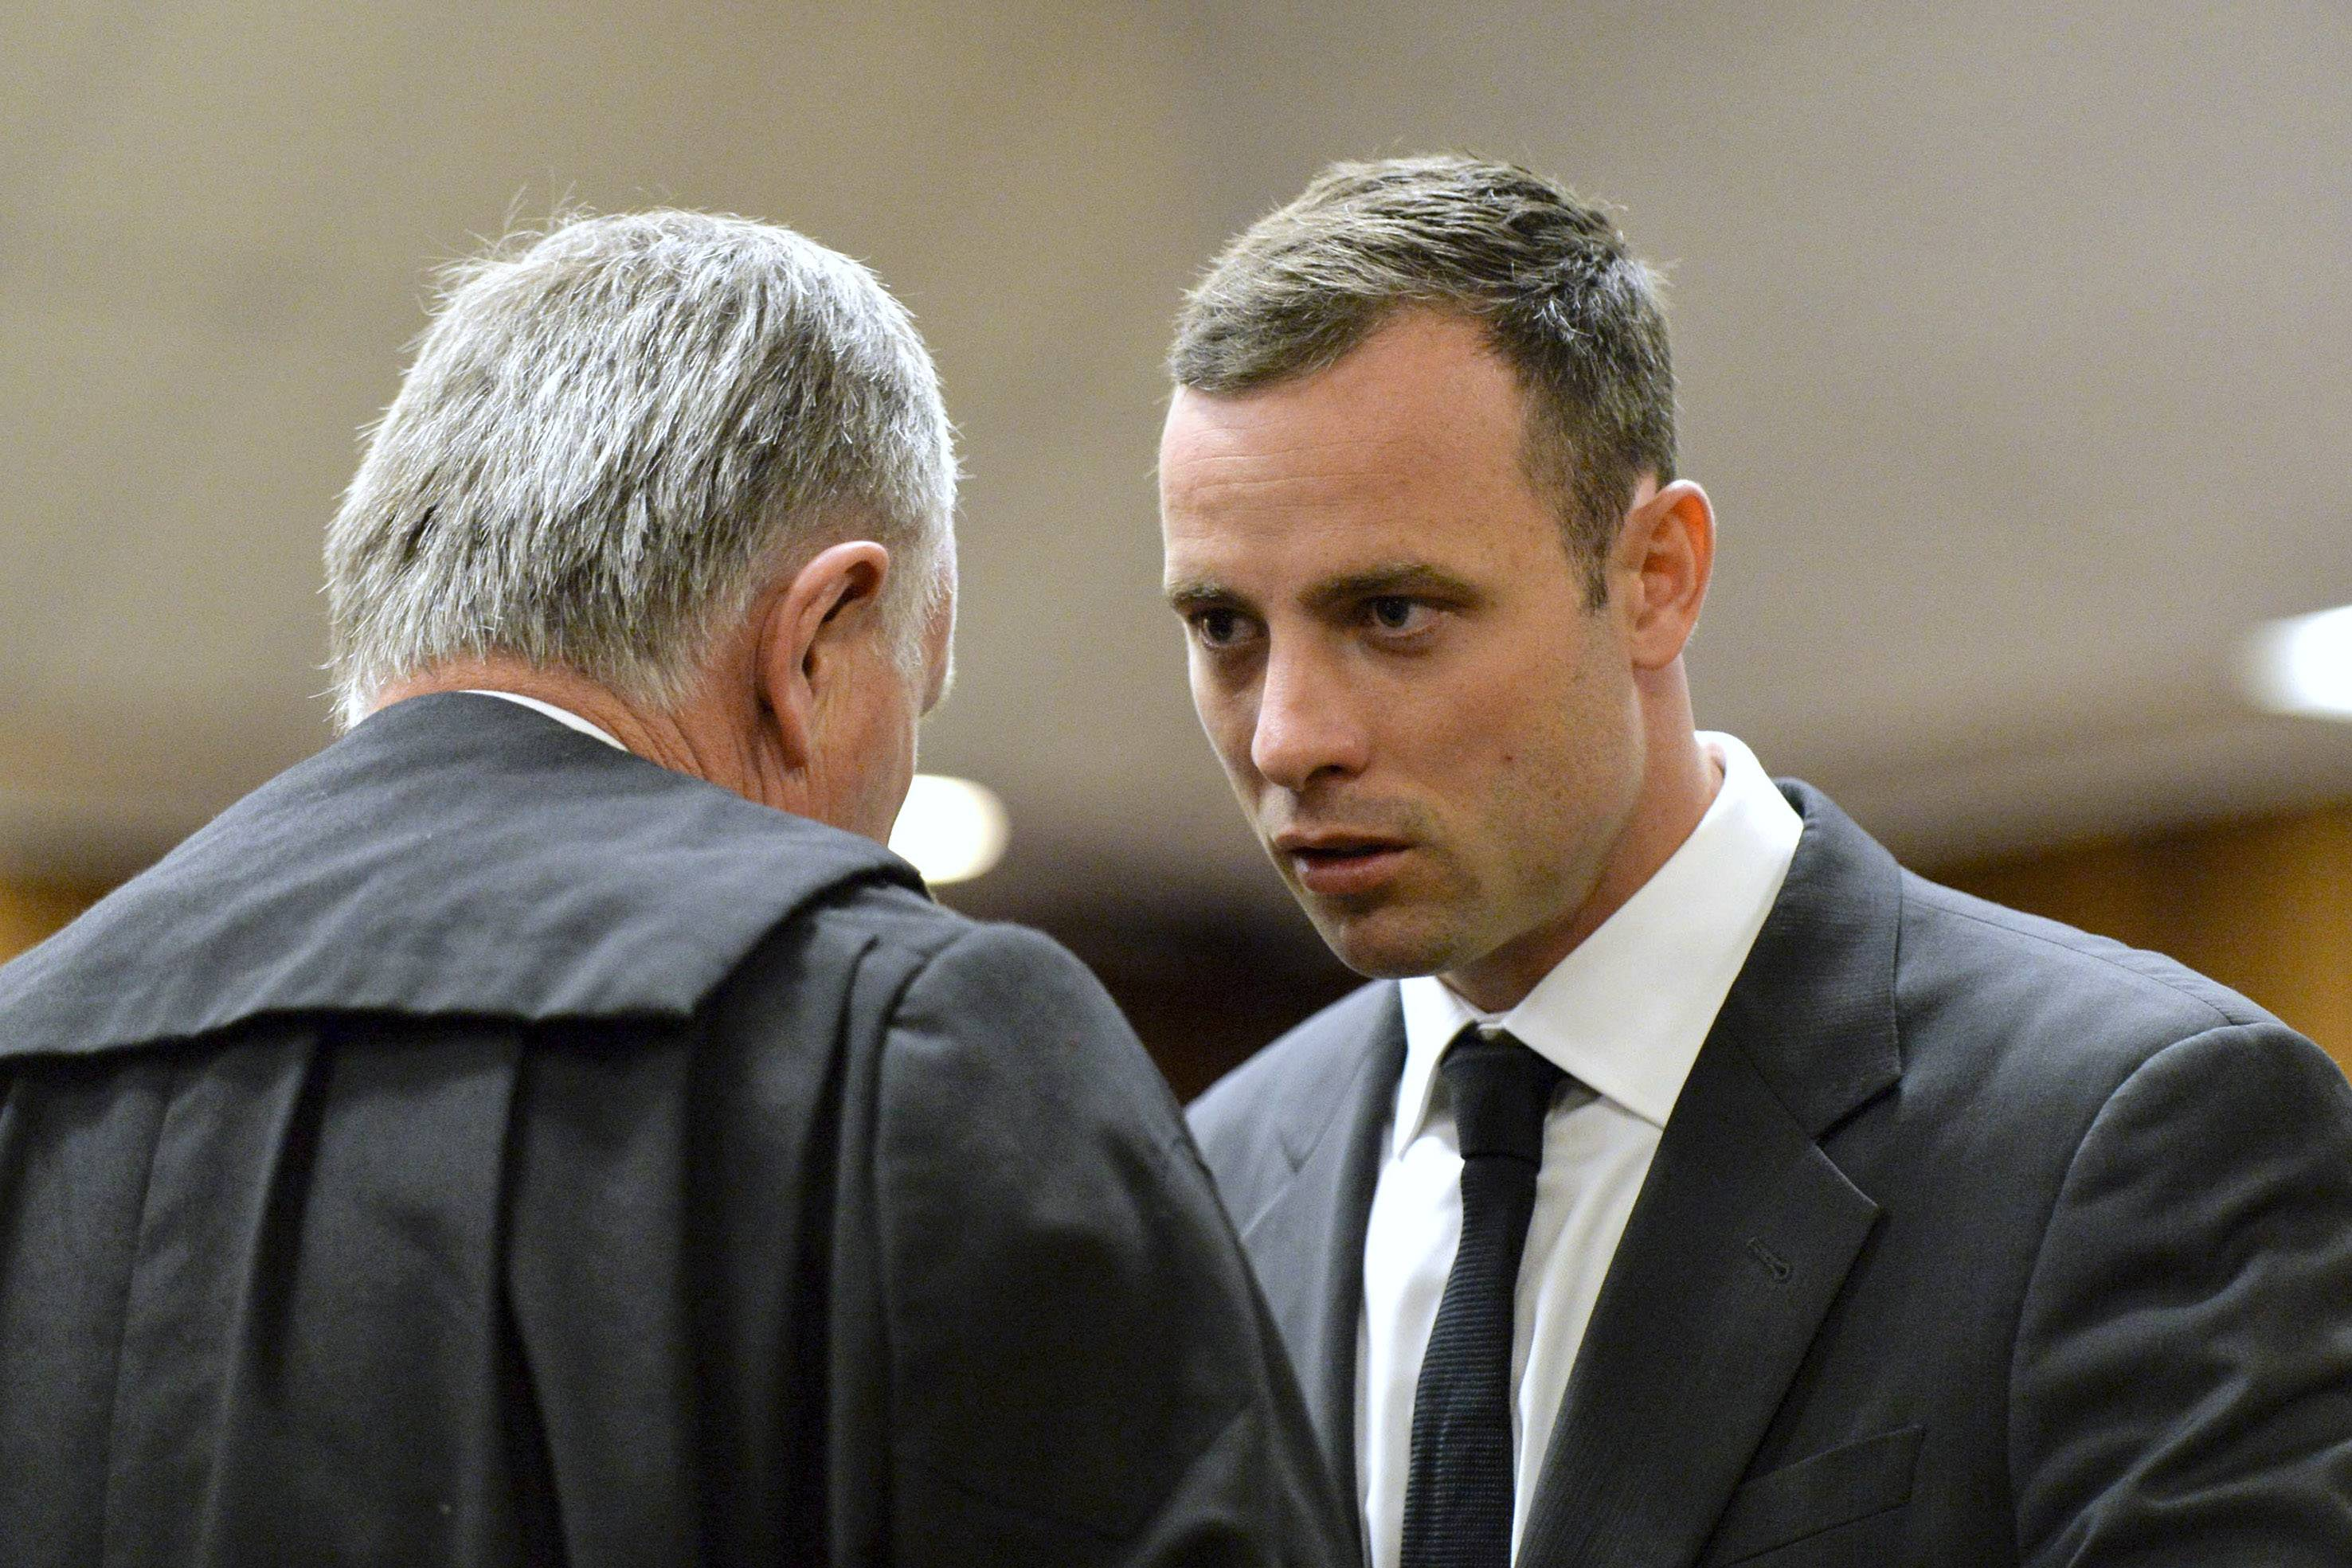 Oscar Pistorius, right, speaks with his lawyer Barry Roux at the start of his trial in Pretoria, South Africa, Monday. Pistorius is charged with murder with premeditation in the shooting death of girlfriend Reeva Steenkamp in the pre-dawn hours of Valentine's Day 2013.